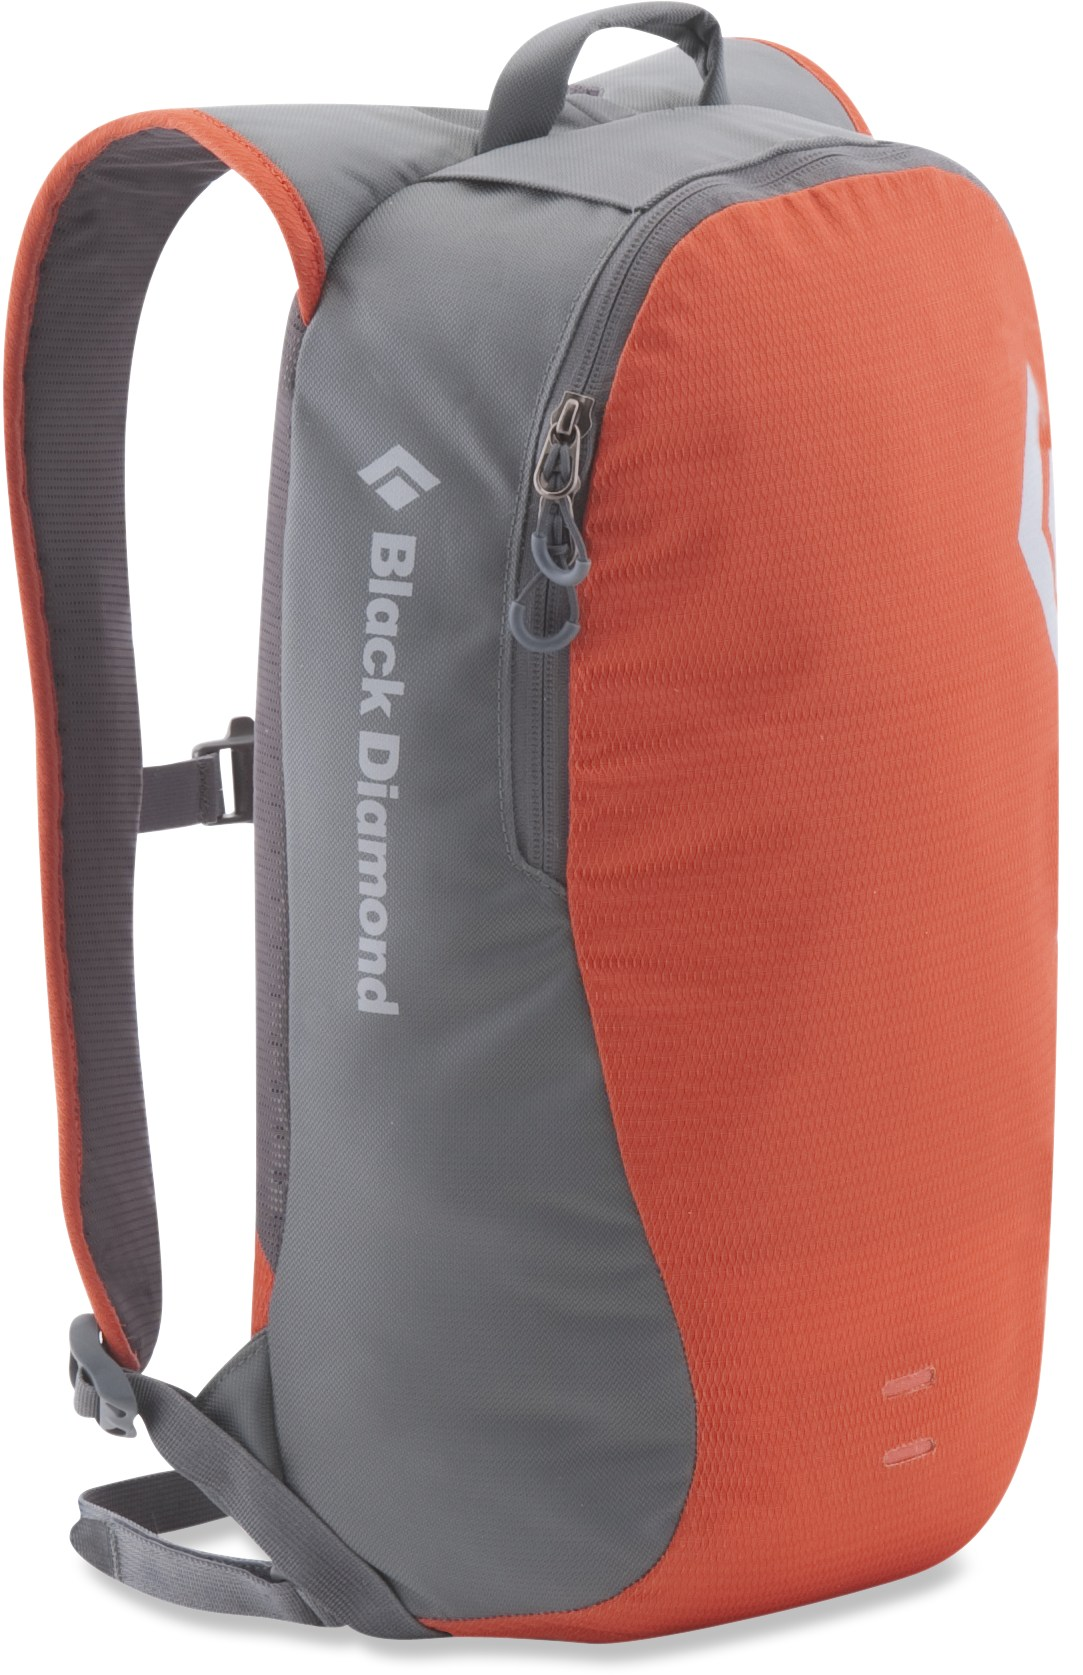 List of Top Running Backpacks